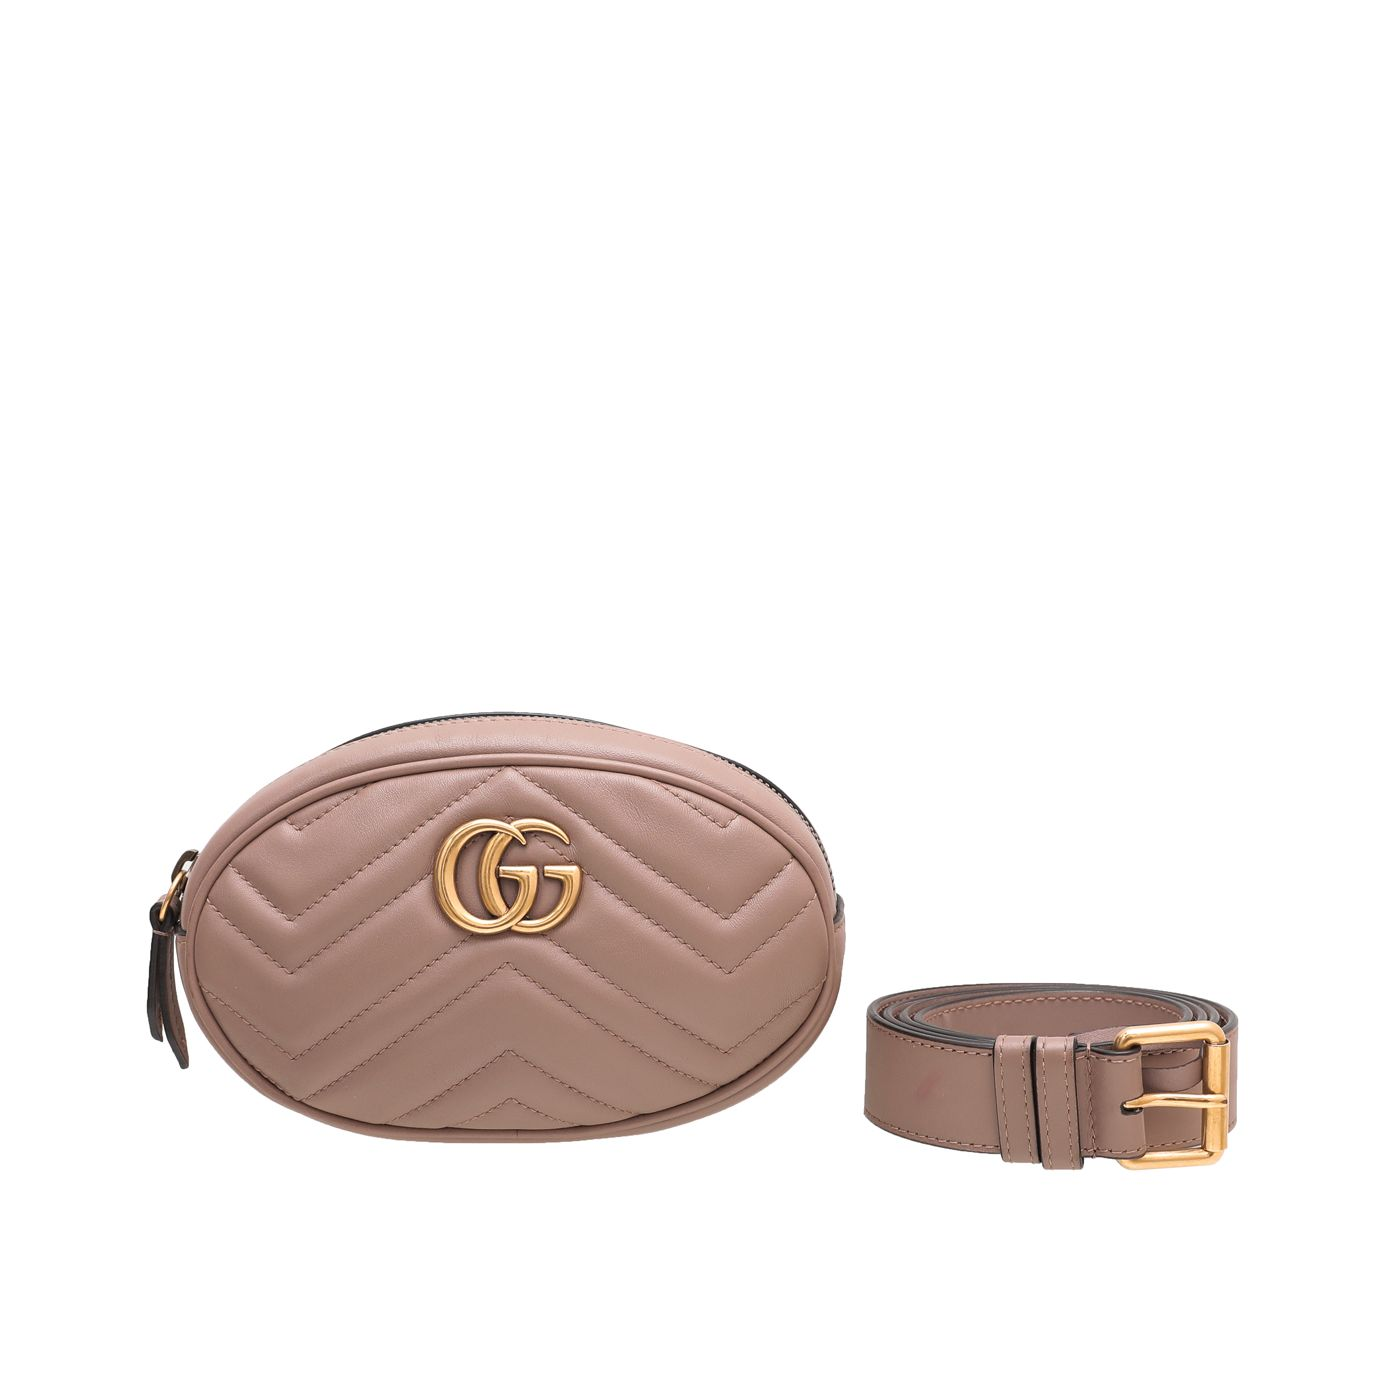 Gucci Nude GG Marmont Belt Bag